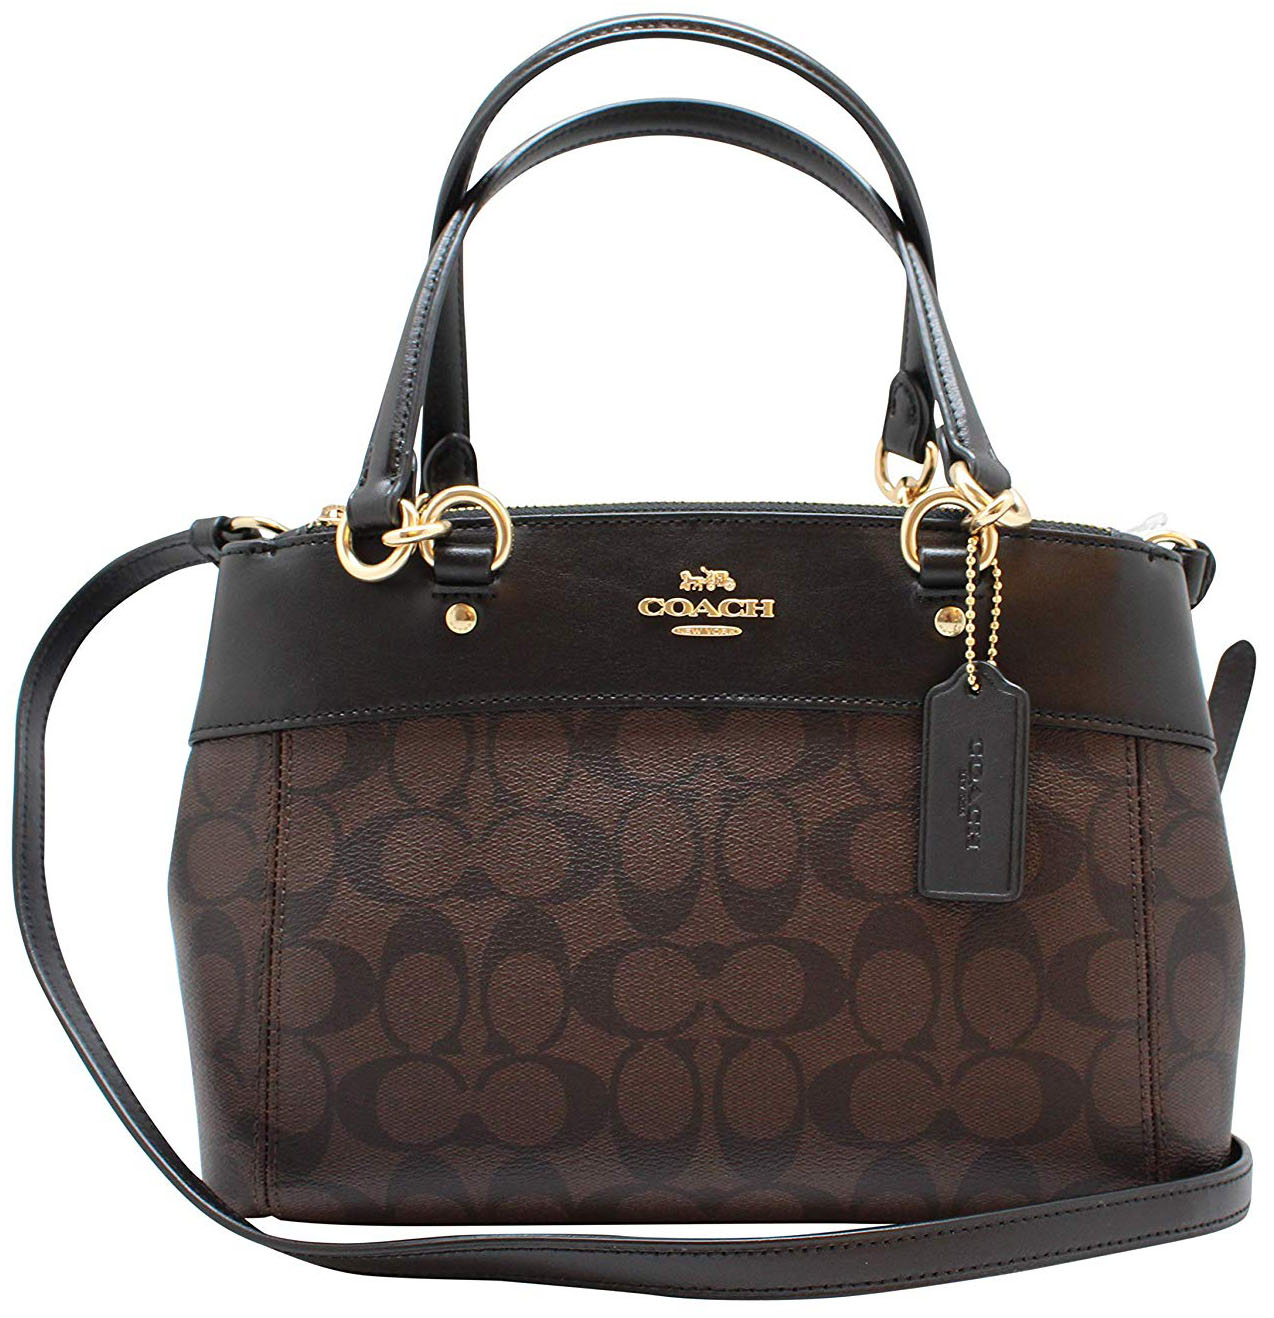 Coach Mini Brooke Carryall Crossbody Bag Brown / Black / Gold # F26139